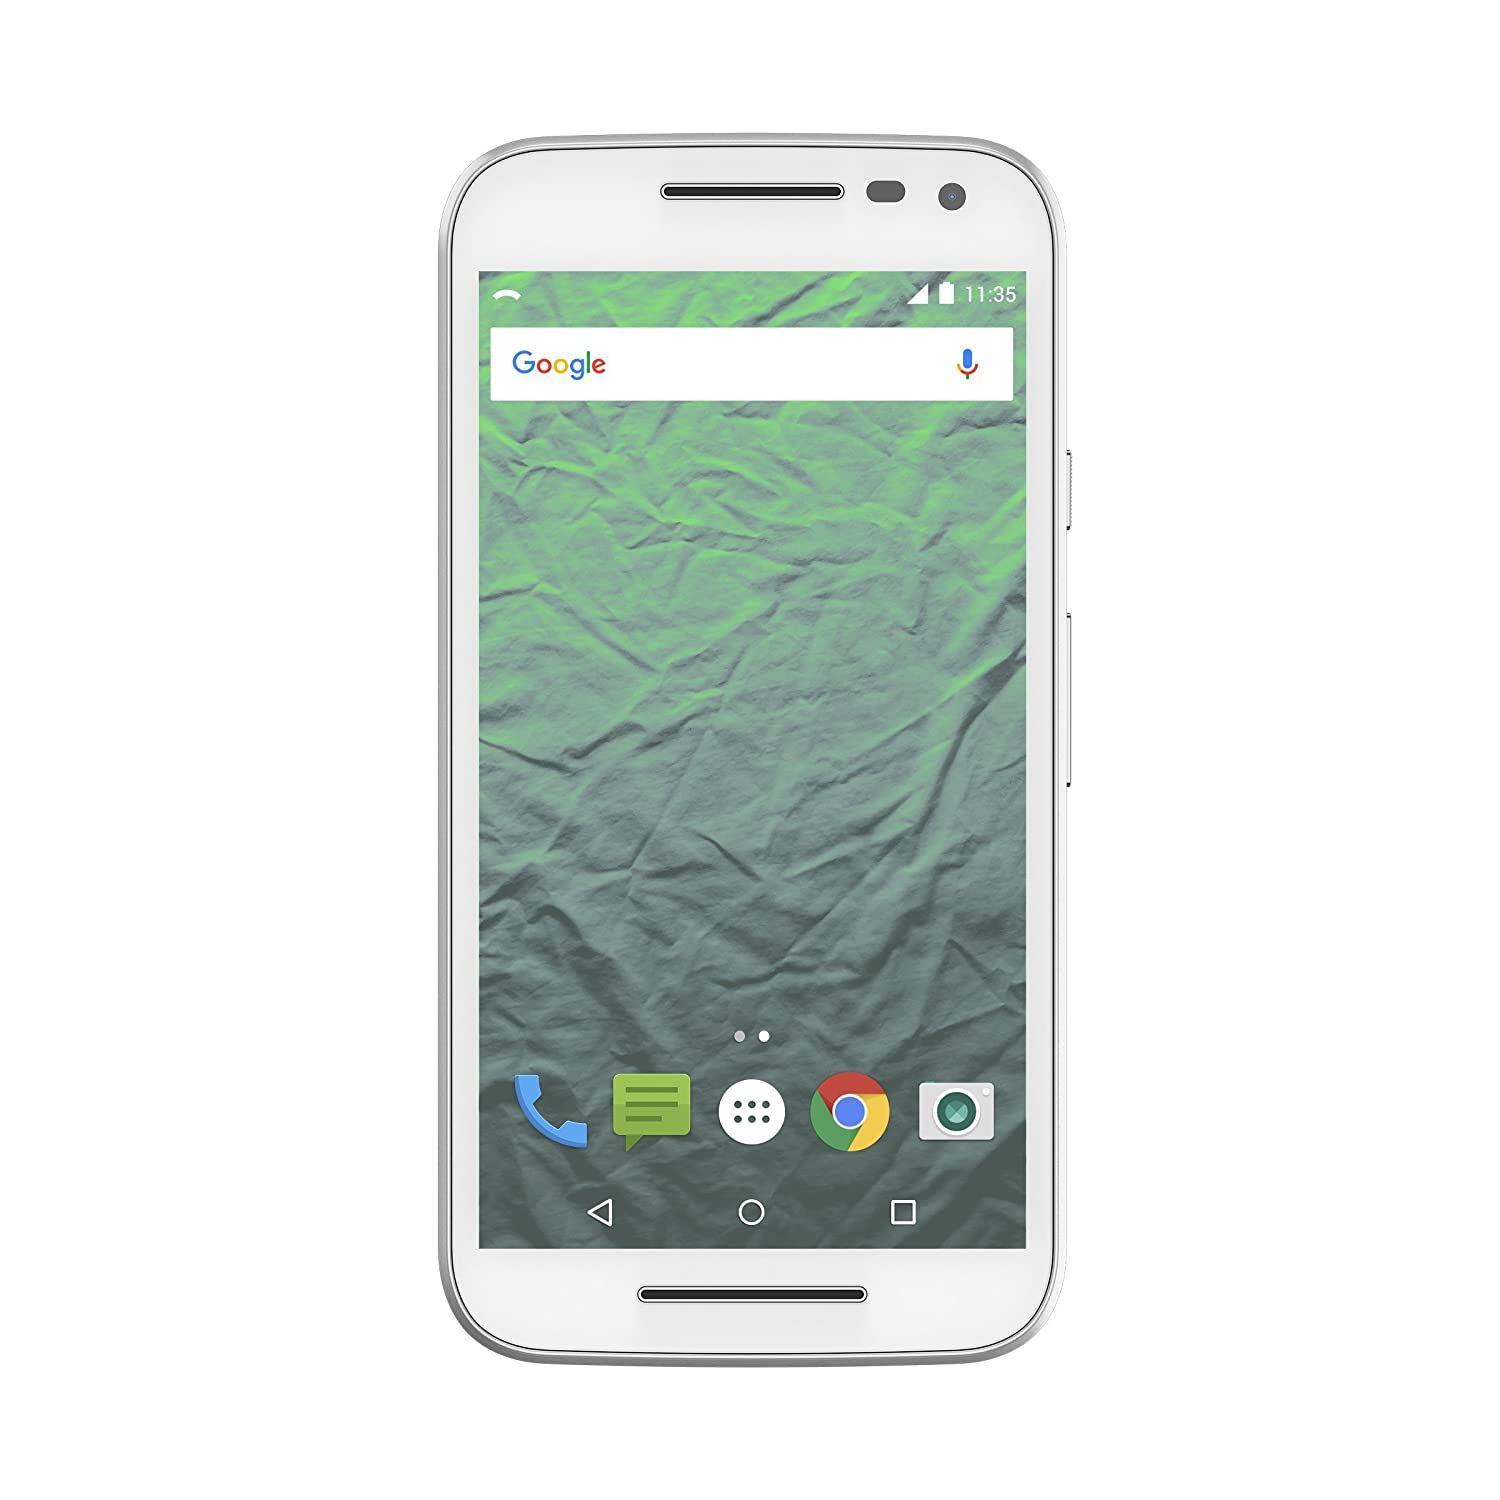 Republic Wireless Moto G 3rd Gen, White/16GB No Contract Phone - Carrier Packaging (Republic Wireless)